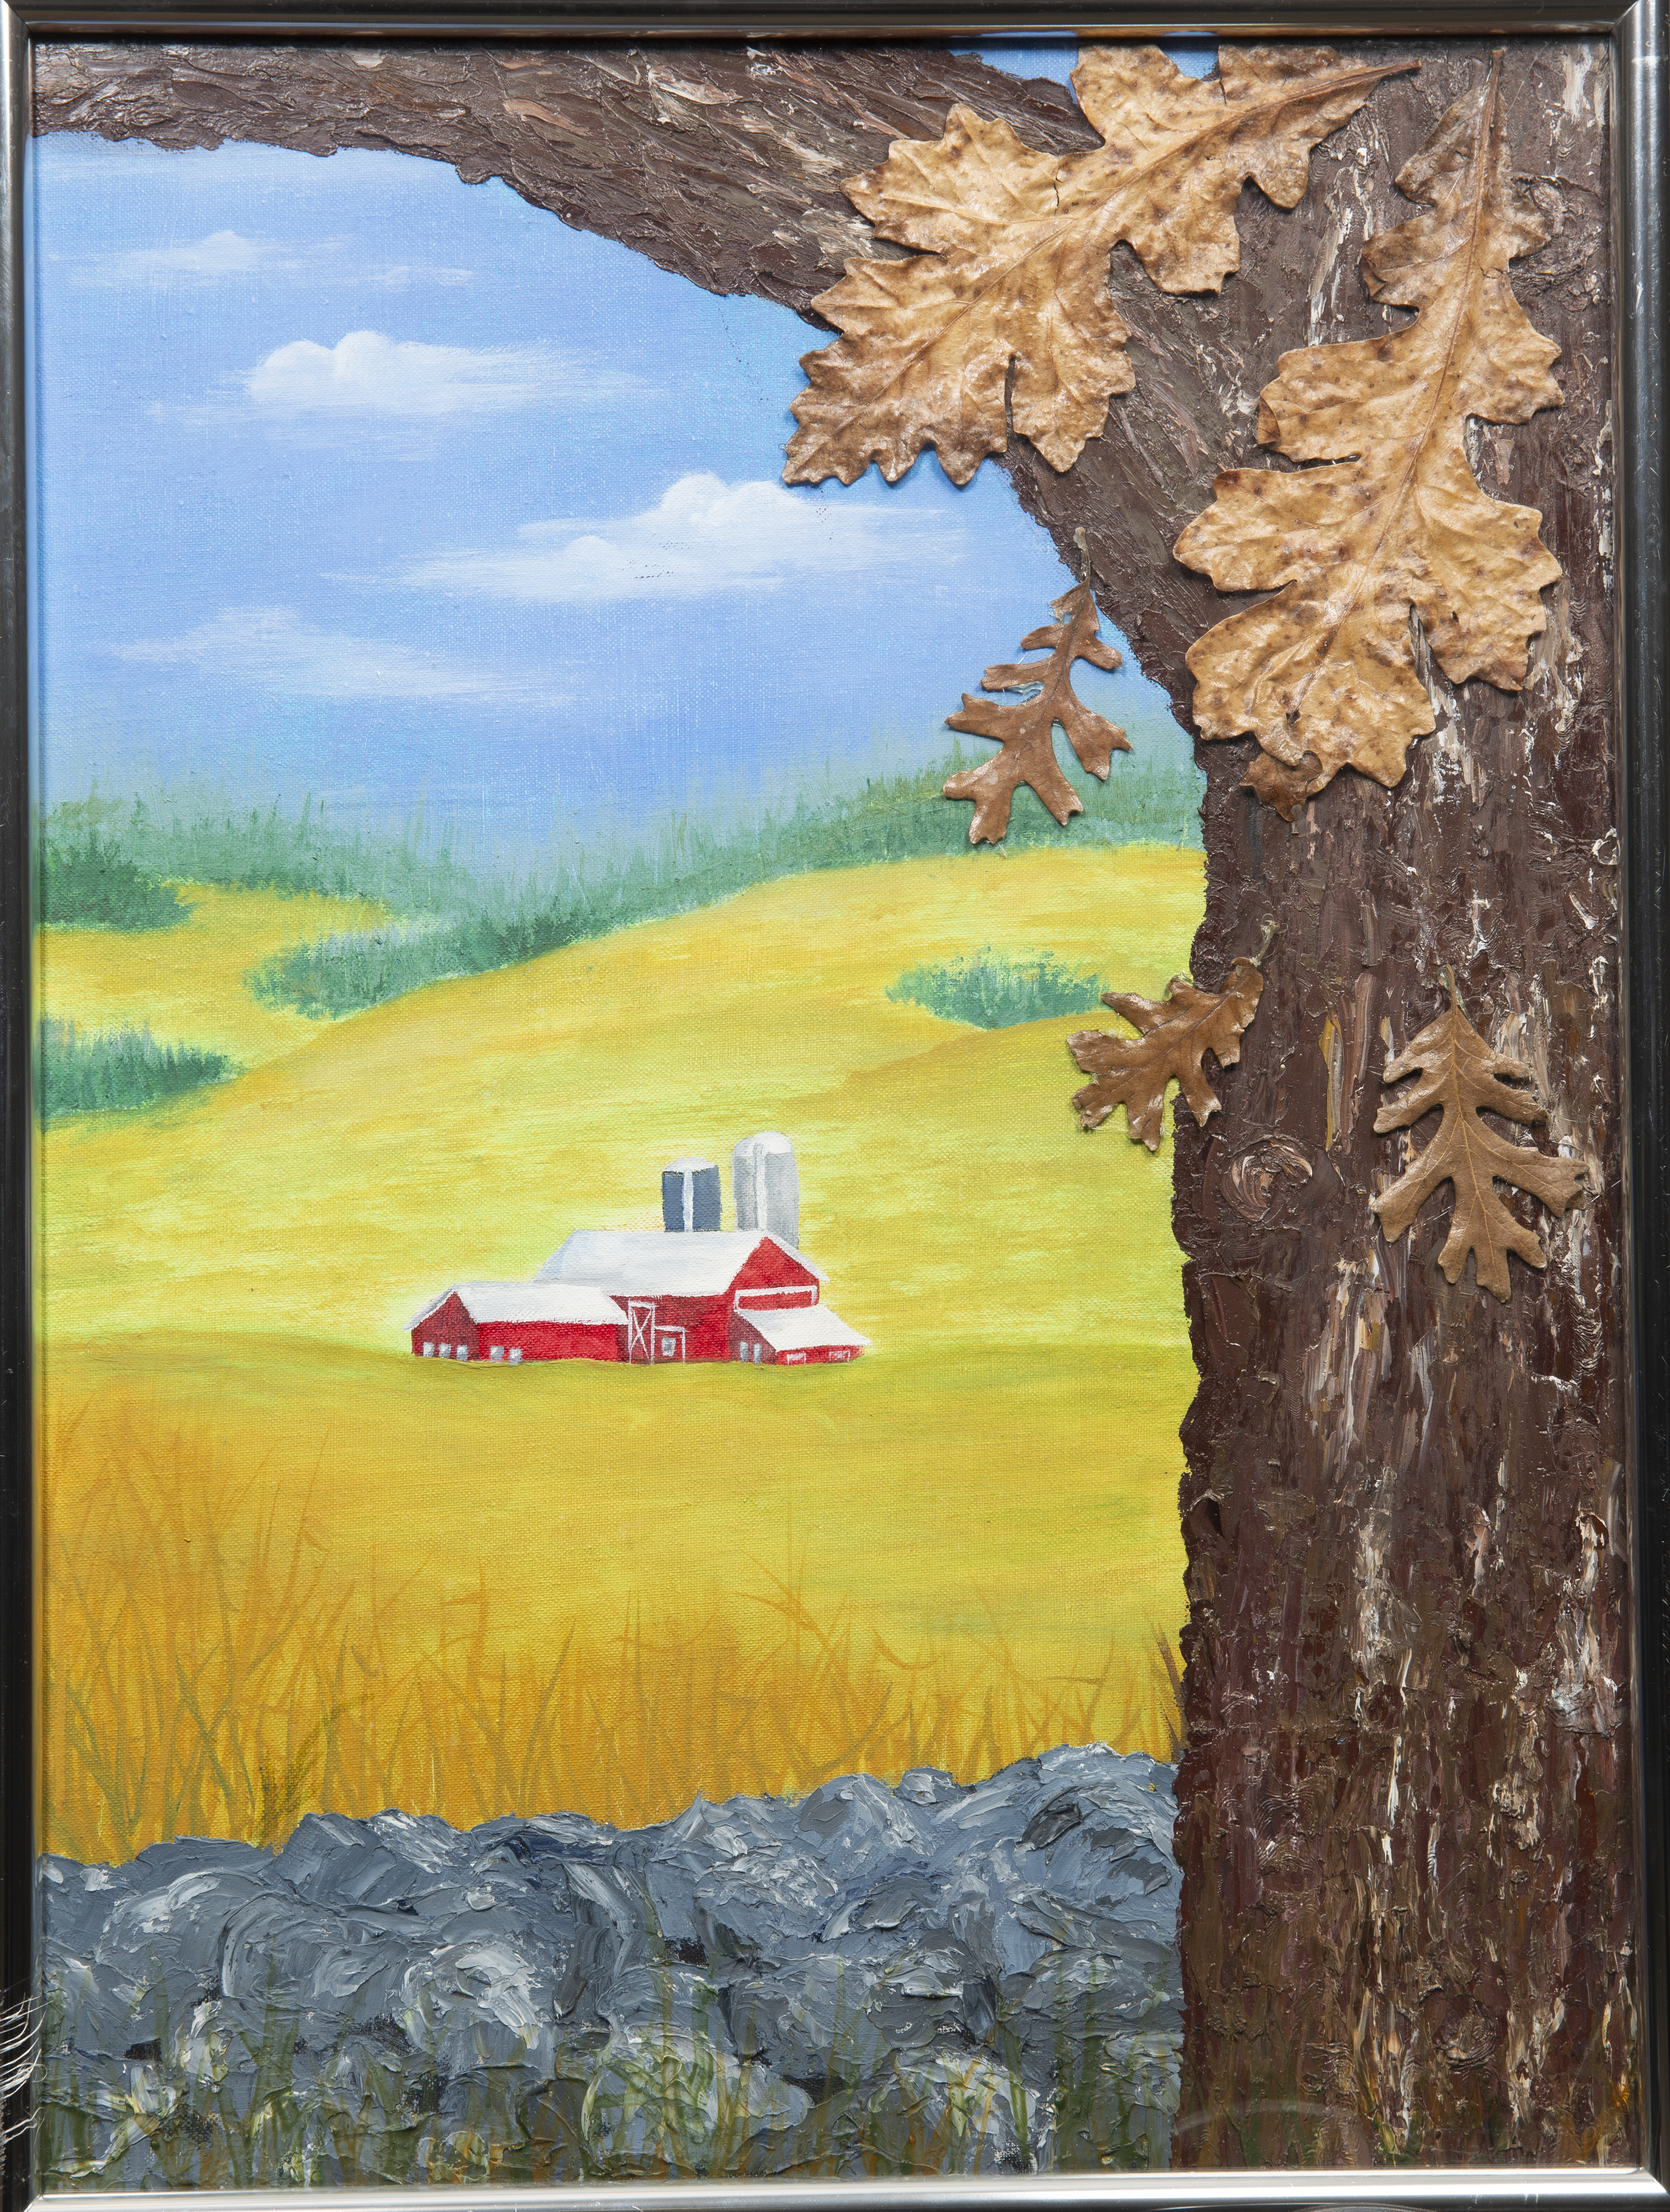 Mixed Media Crafts - The Barn - Image of red barn on the prairie with hills in the background and a large oak tree in the forefront featuring 3D oak leaves.